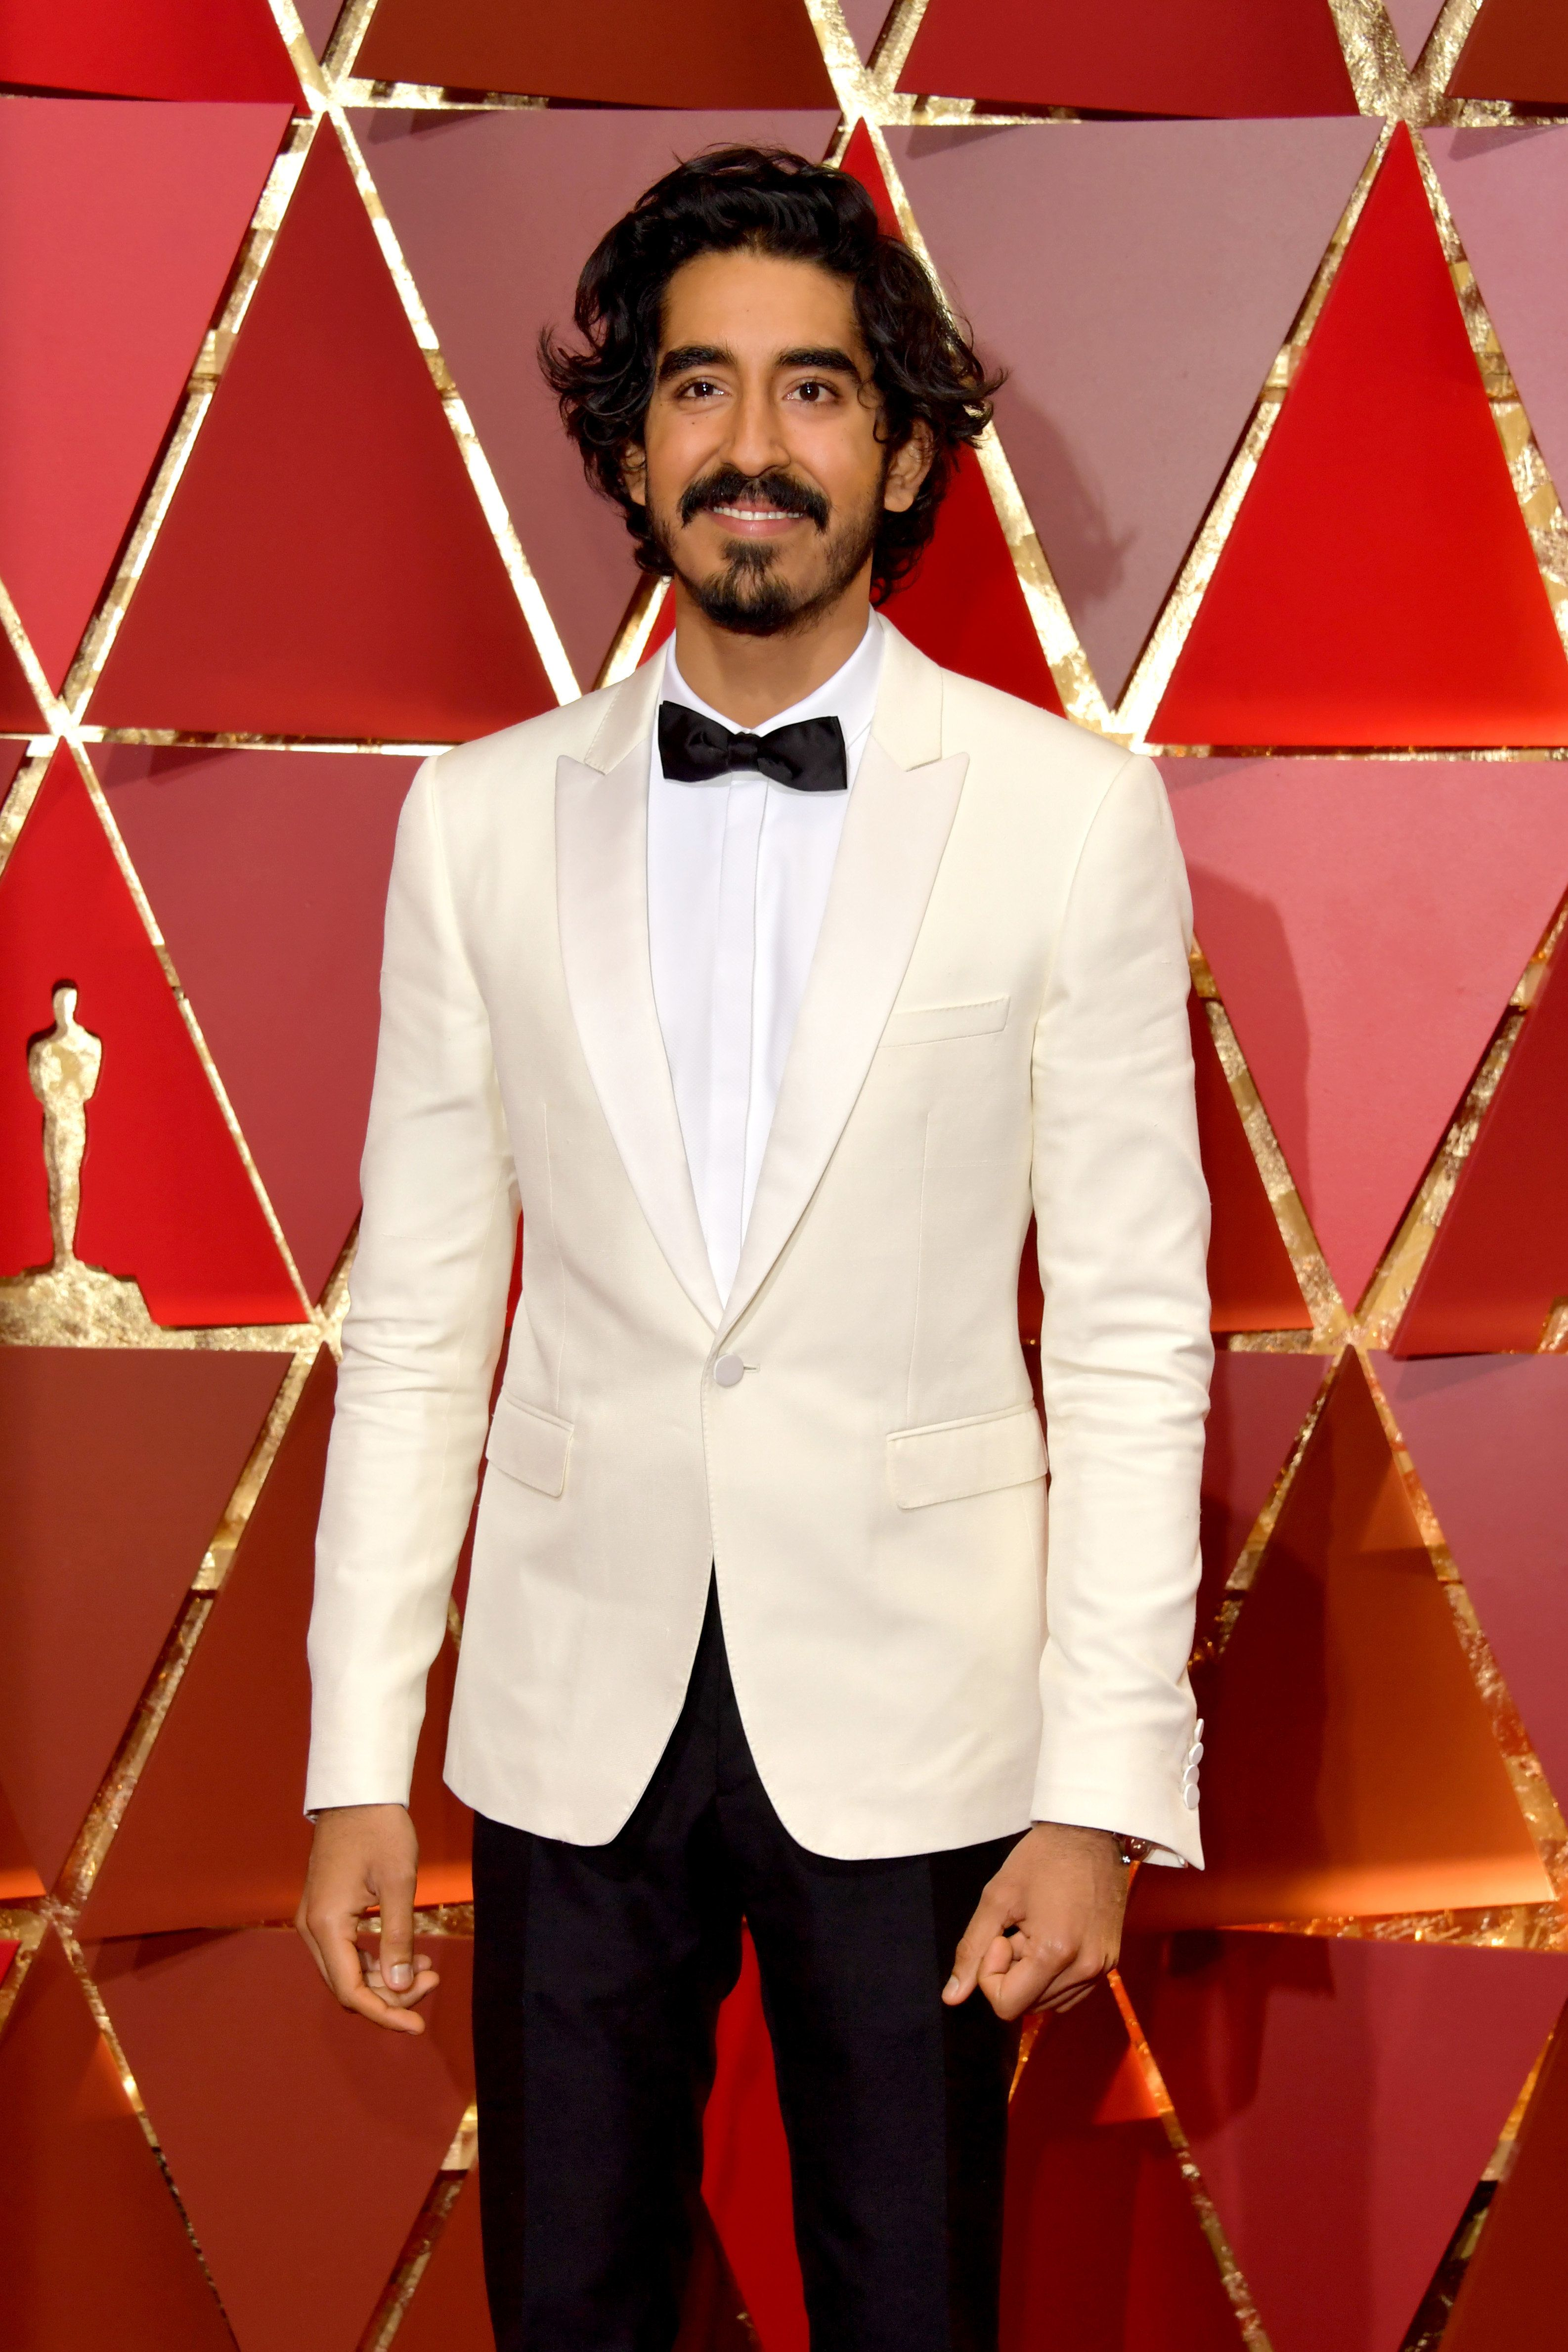 HOLLYWOOD, CA - FEBRUARY 26:  Actor Dev Patel attends the 89th Annual Academy Awards at Hollywood & Highland Center on February 26, 2017 in Hollywood, California.  (Photo by Lester Cohen/WireImage)